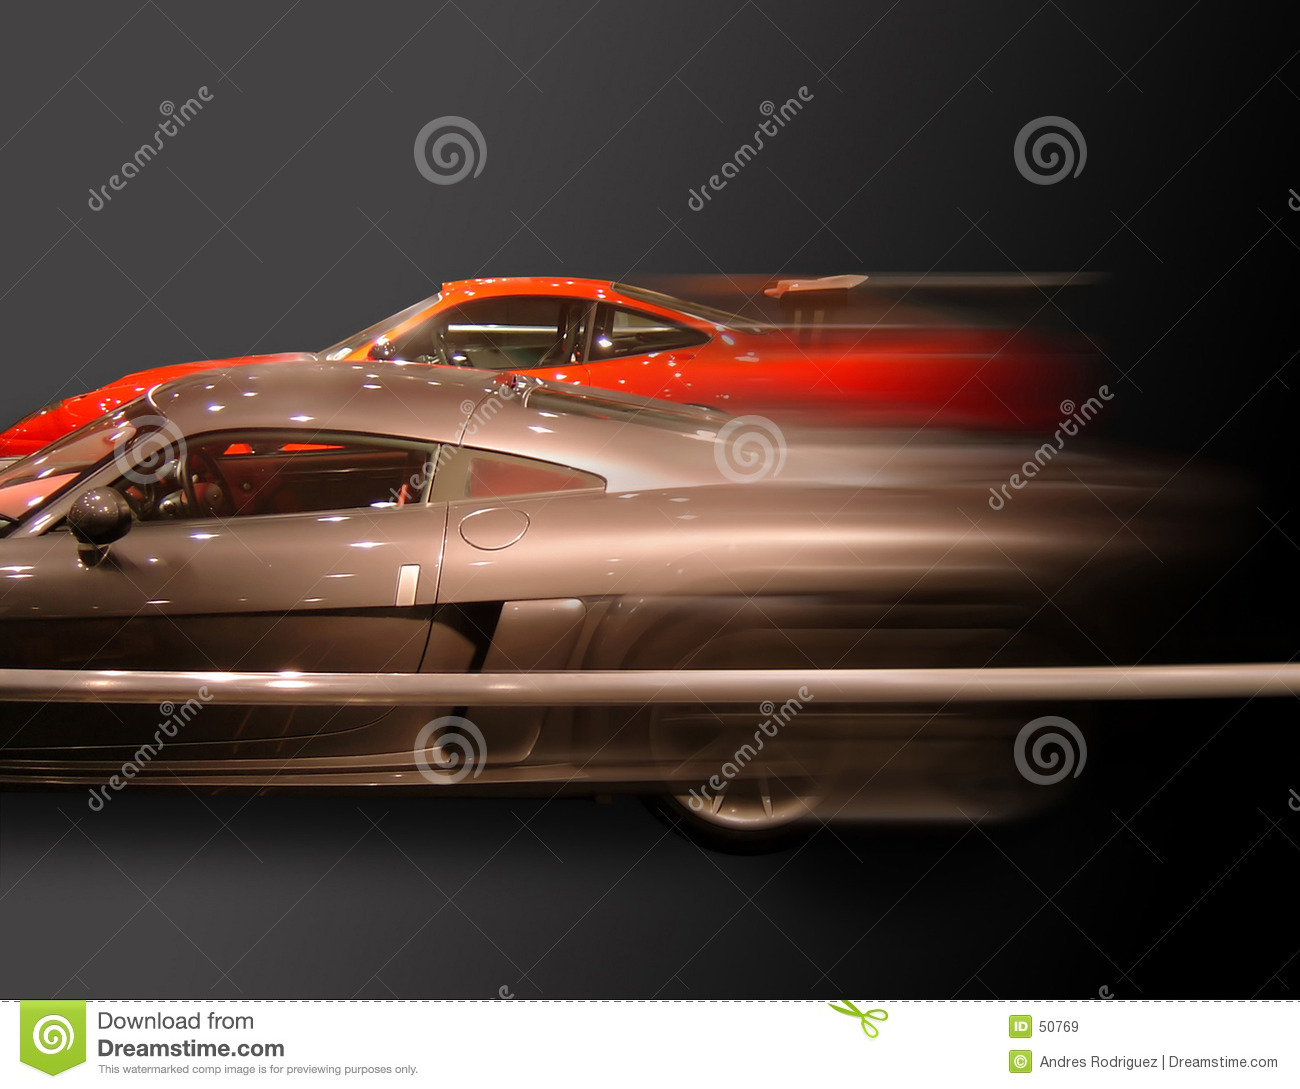 Fast Cars Stock Image. Image Of Motor, Fast, Moving, Grey